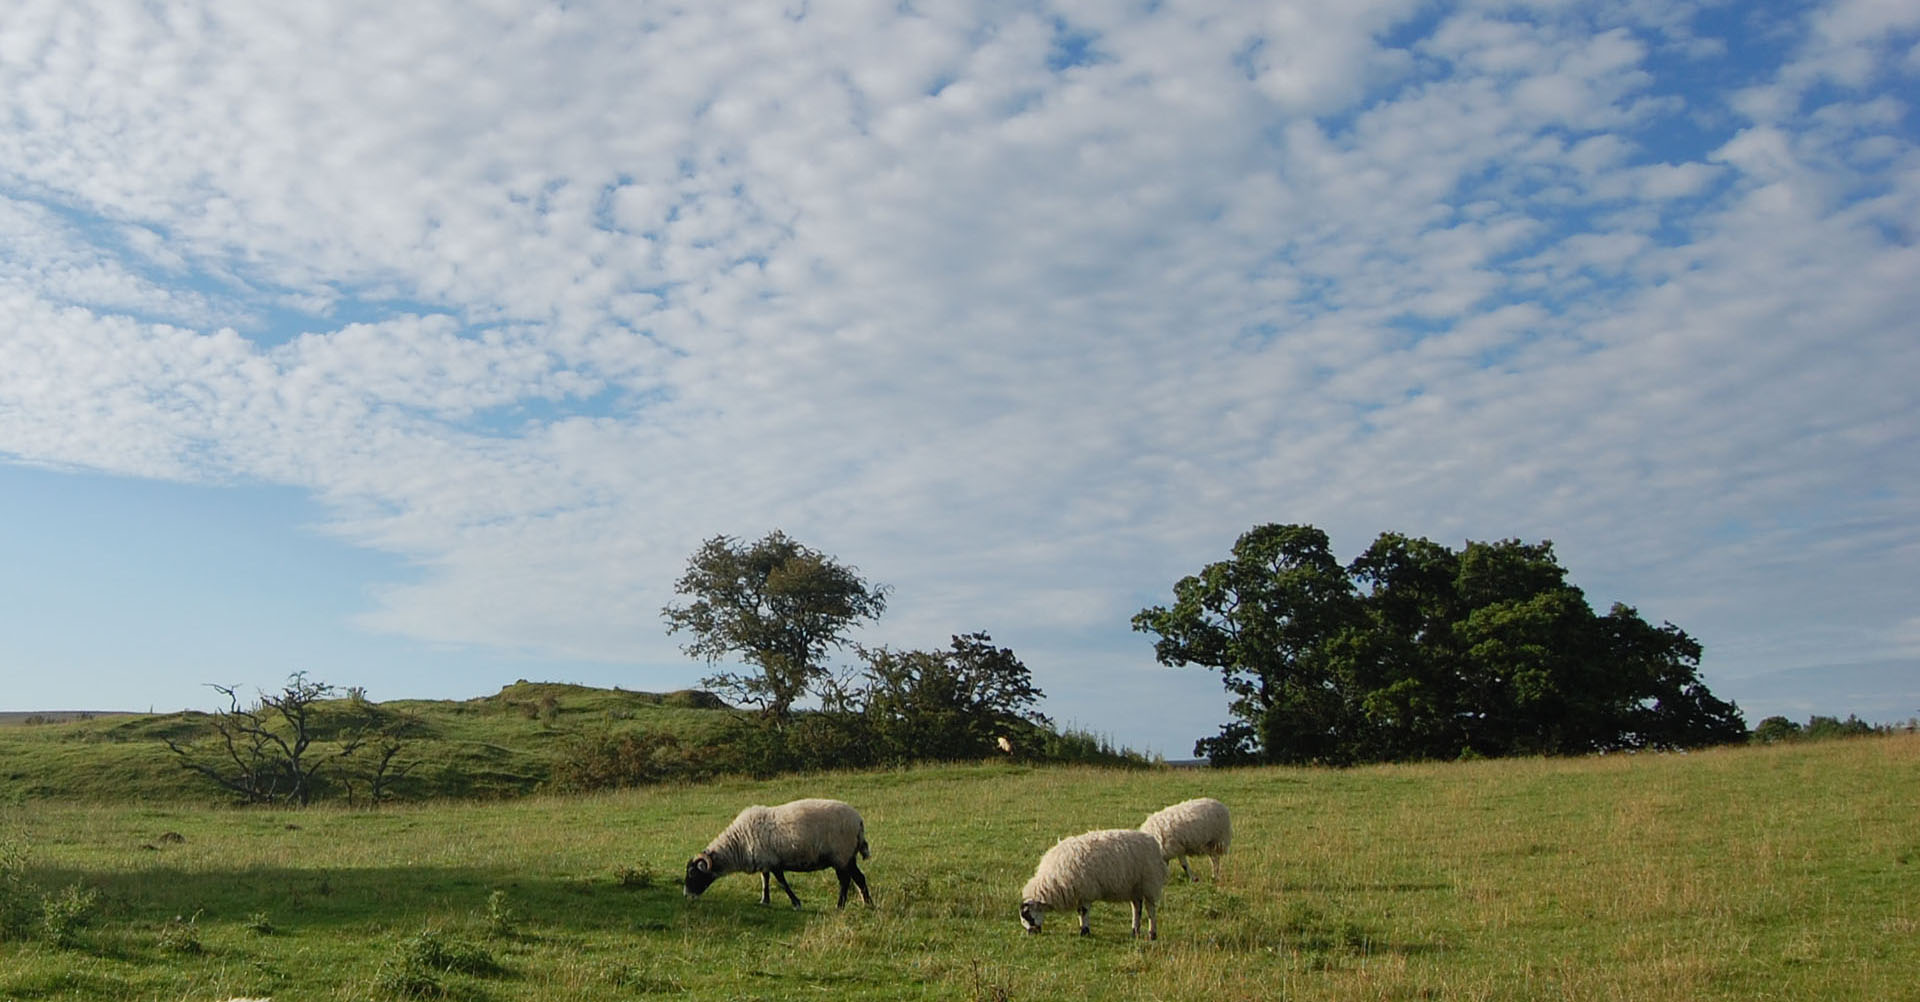 Grazing Sheep In a Field Somewhere Tynedale Northumberland